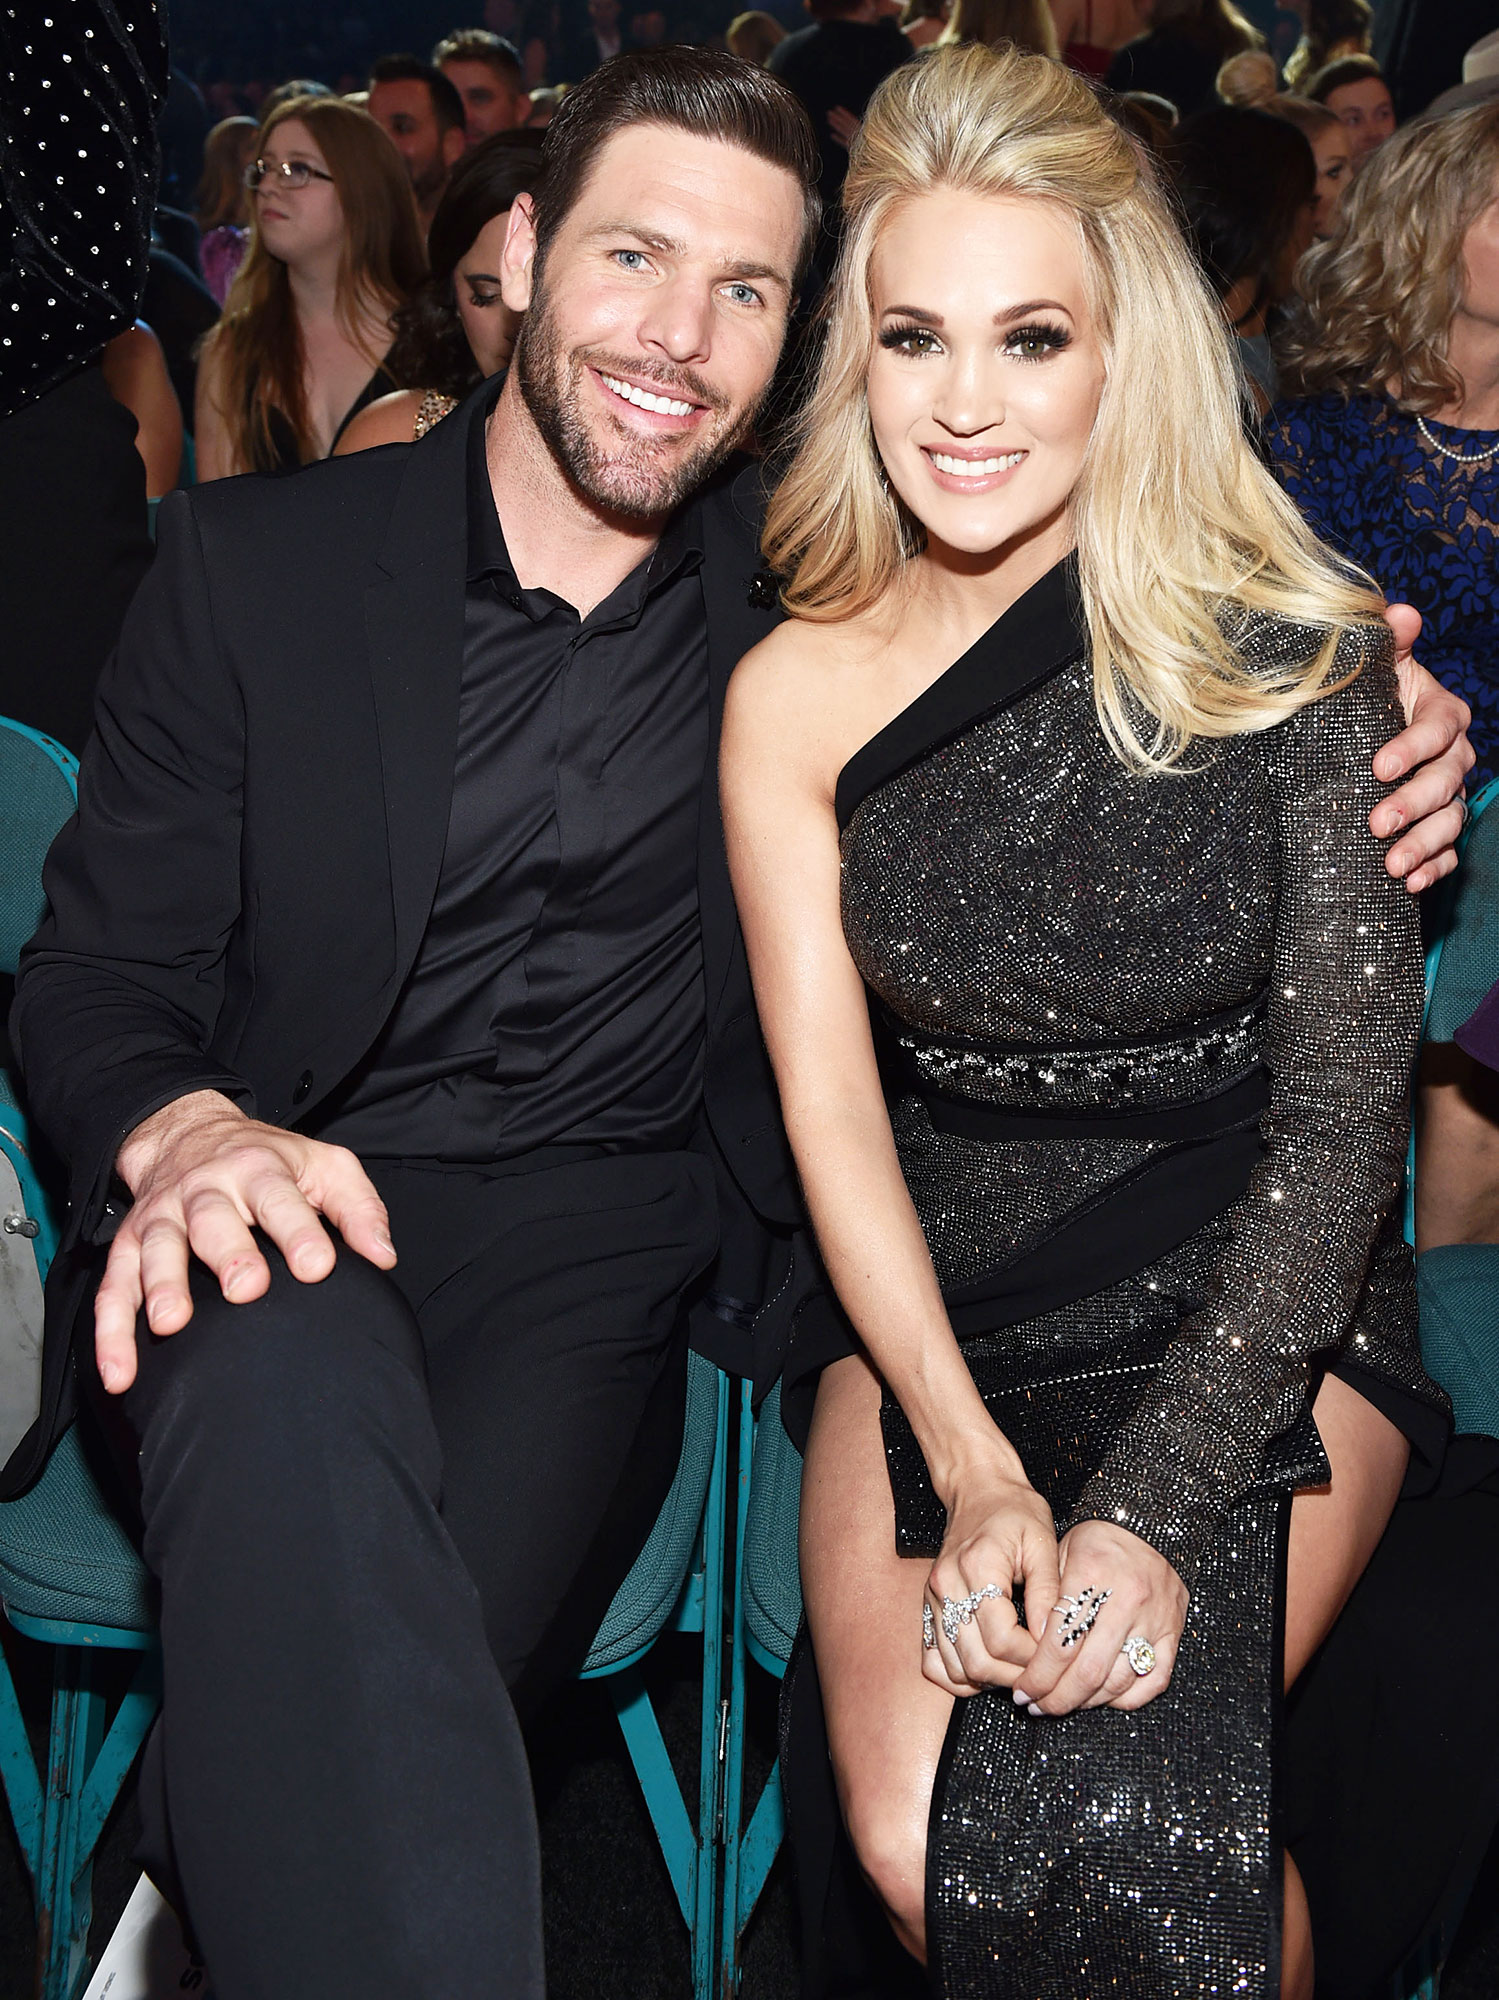 Inside ACM Awards 2019 Mike Fisher Carrie Underwood - Carrie Underwood and Mike Fisher , who welcomed son Jacob in January , were dressed to the nines. (The couple also share son Isaiah.)